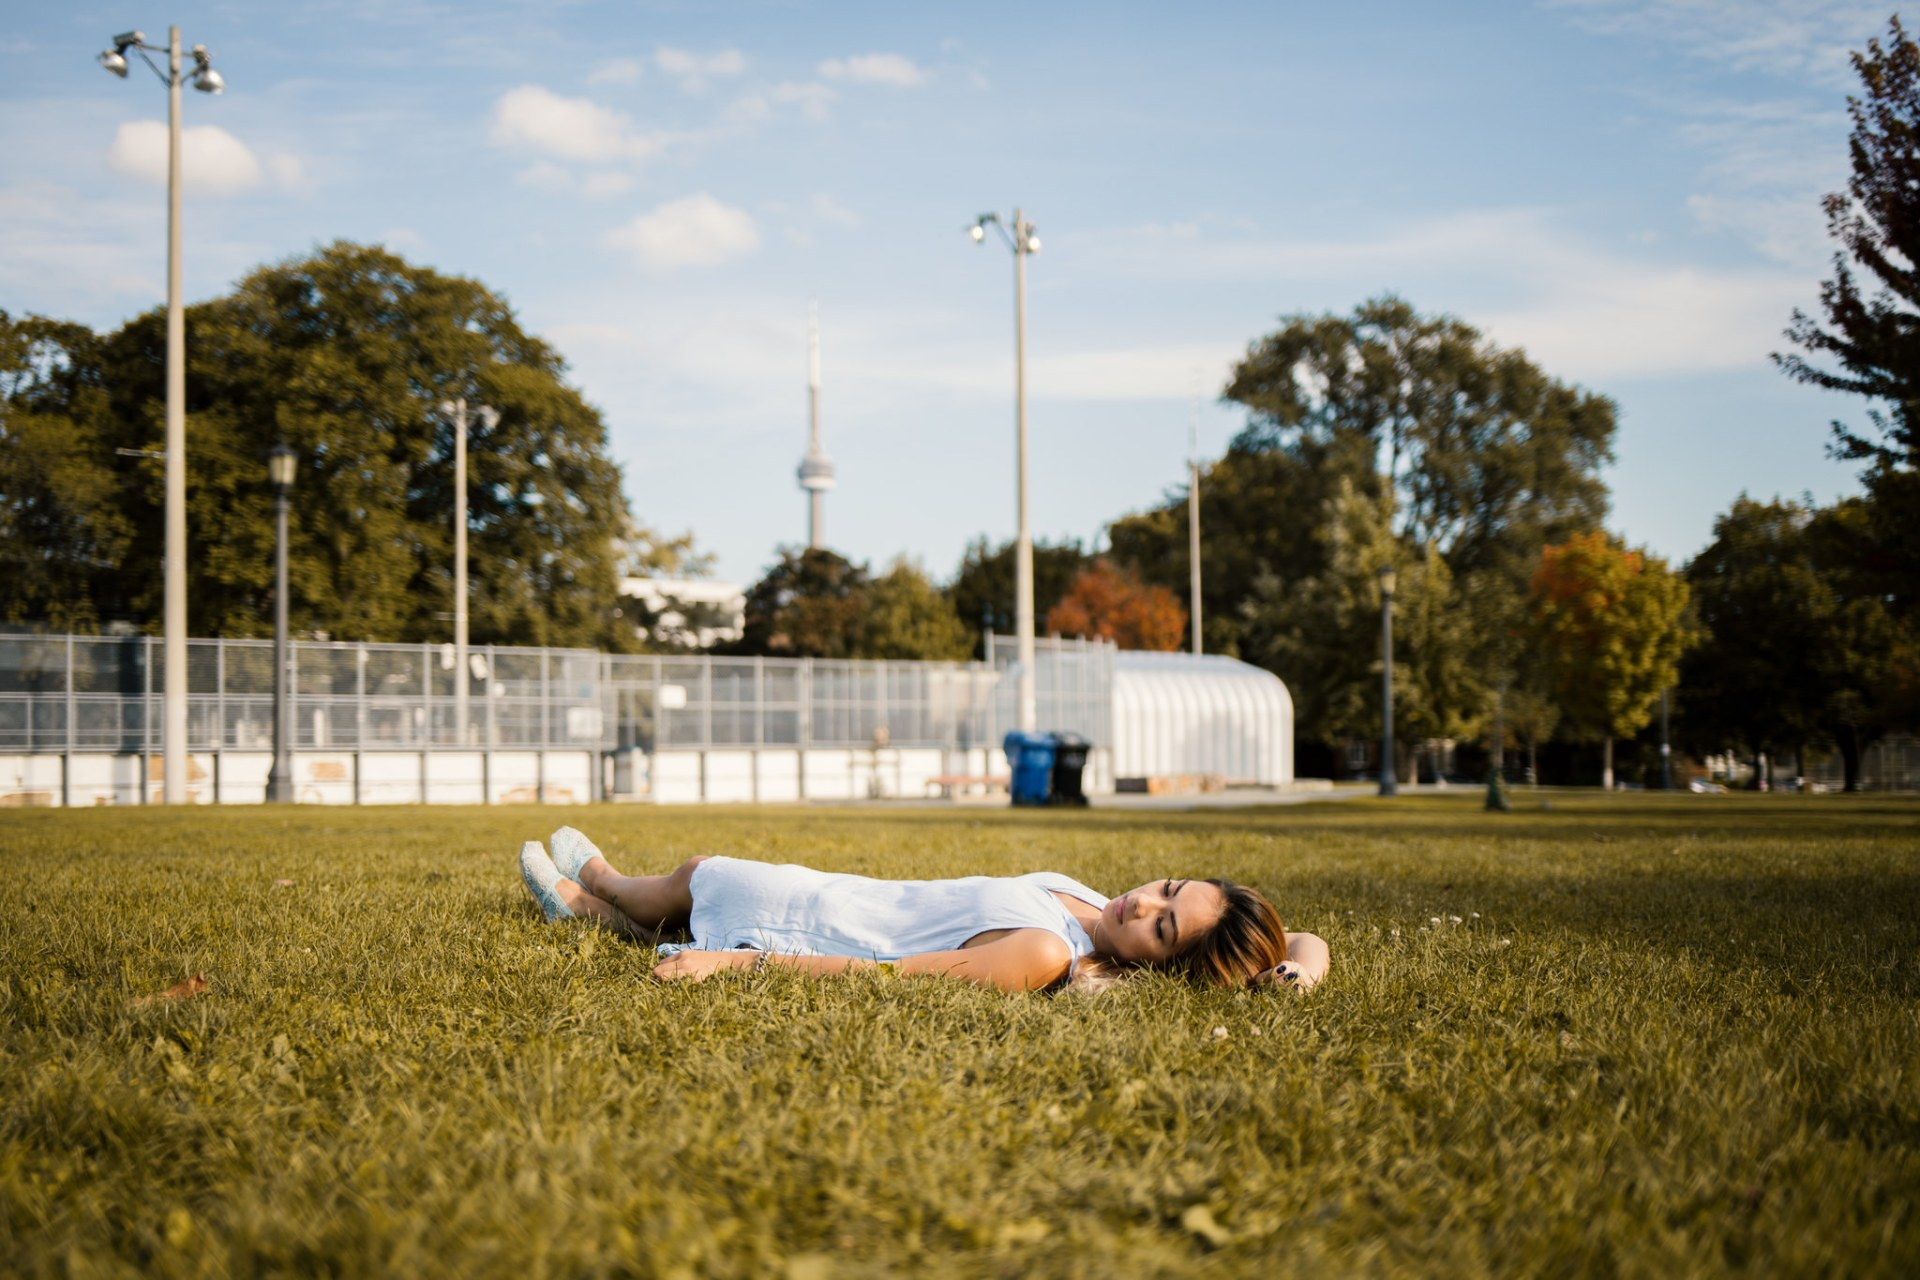 girl laying in grass field, anxious heart, prayers, prayers for the anxious heart